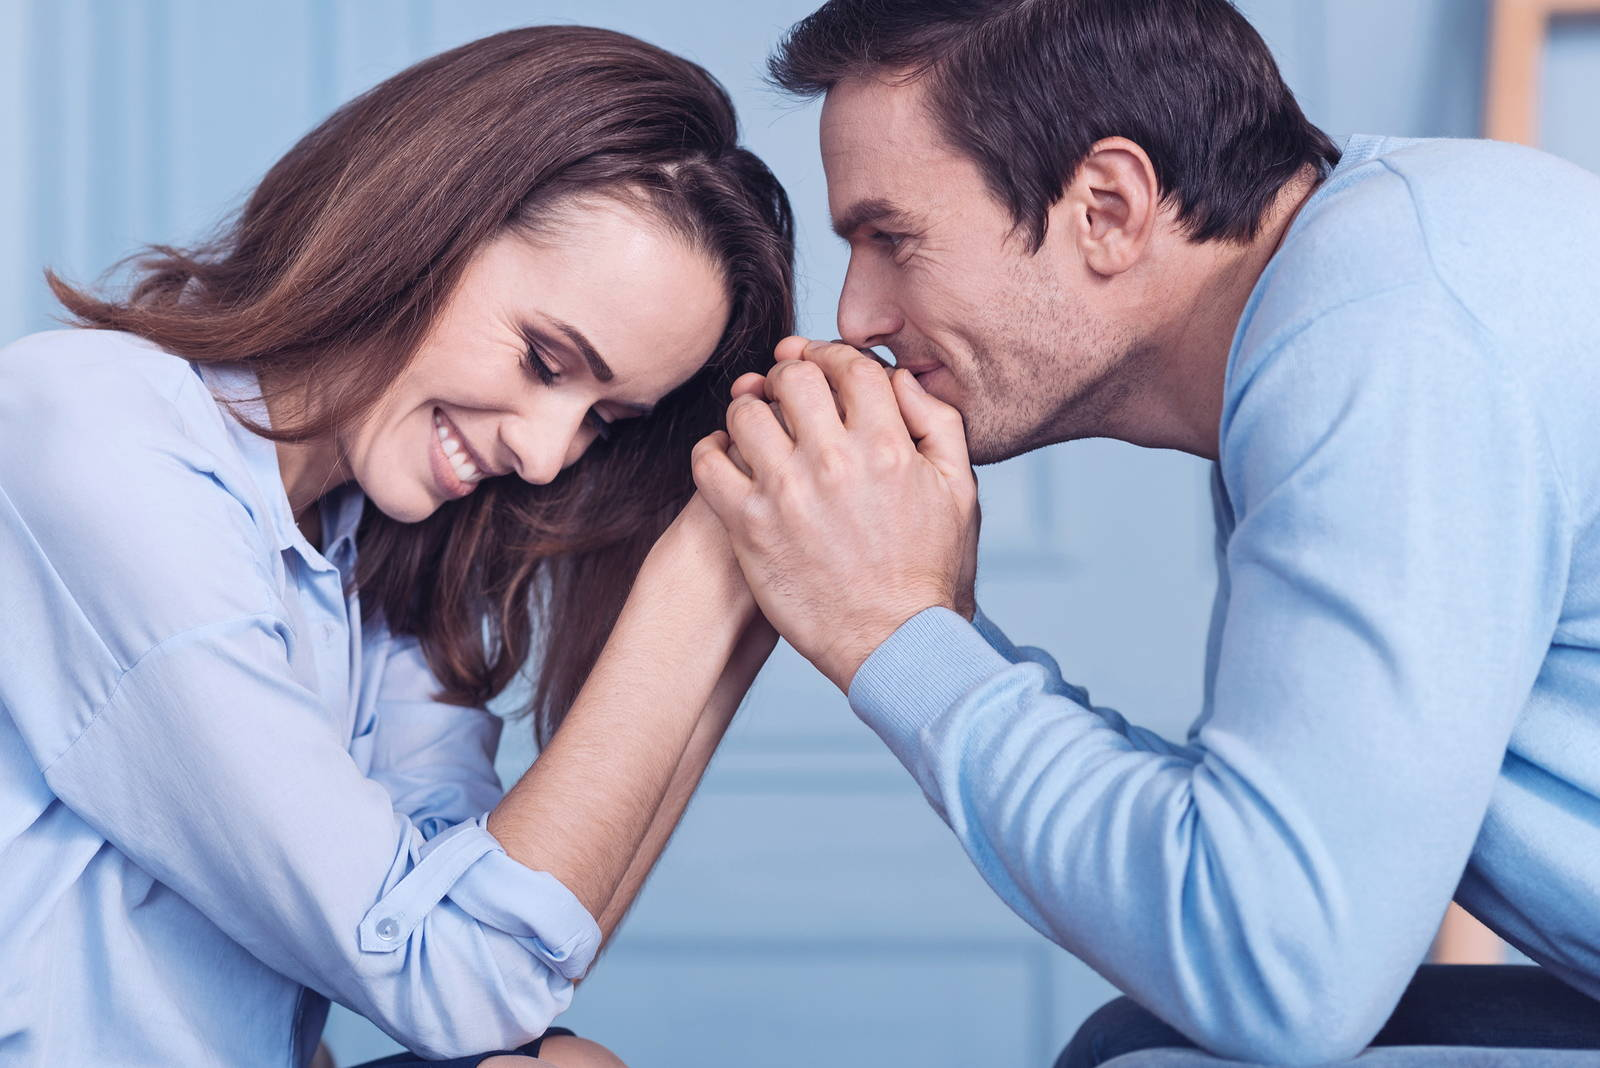 couple re-connected having fun time together